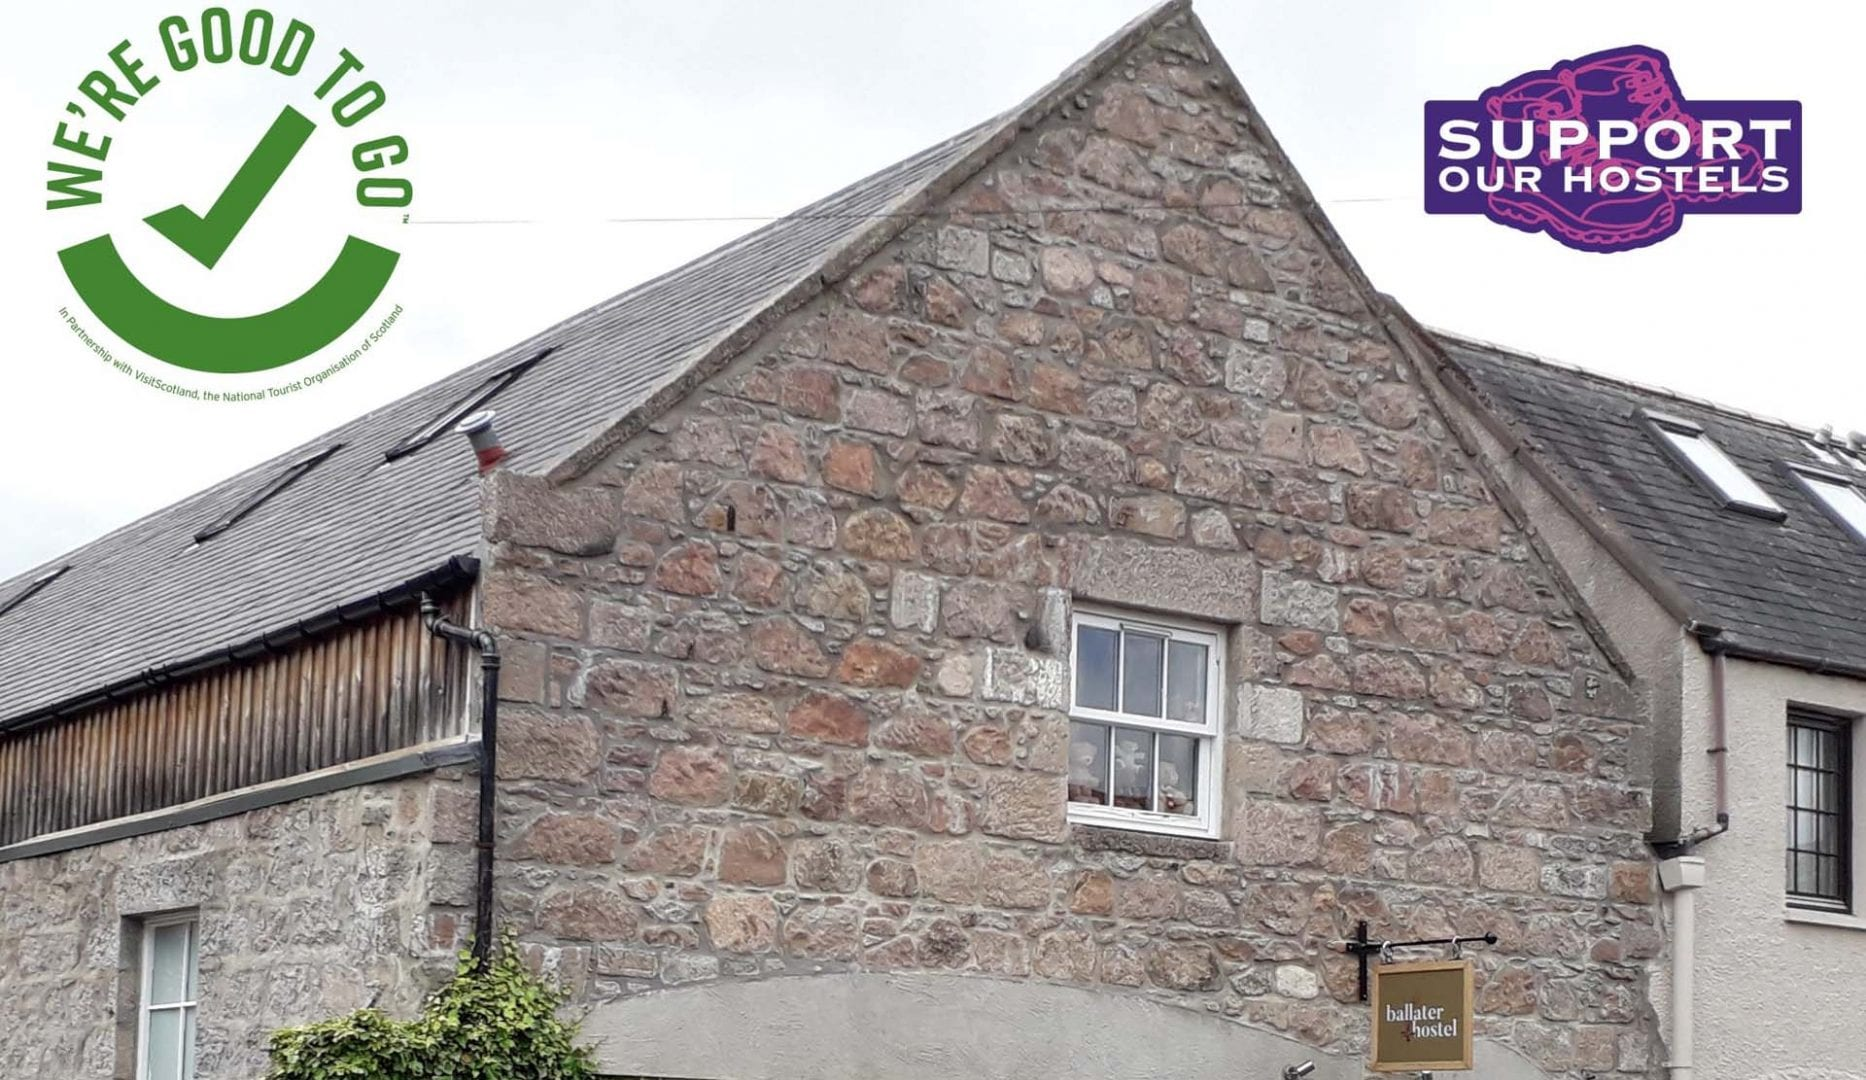 good to go Ballater hostel with support our hostels logo